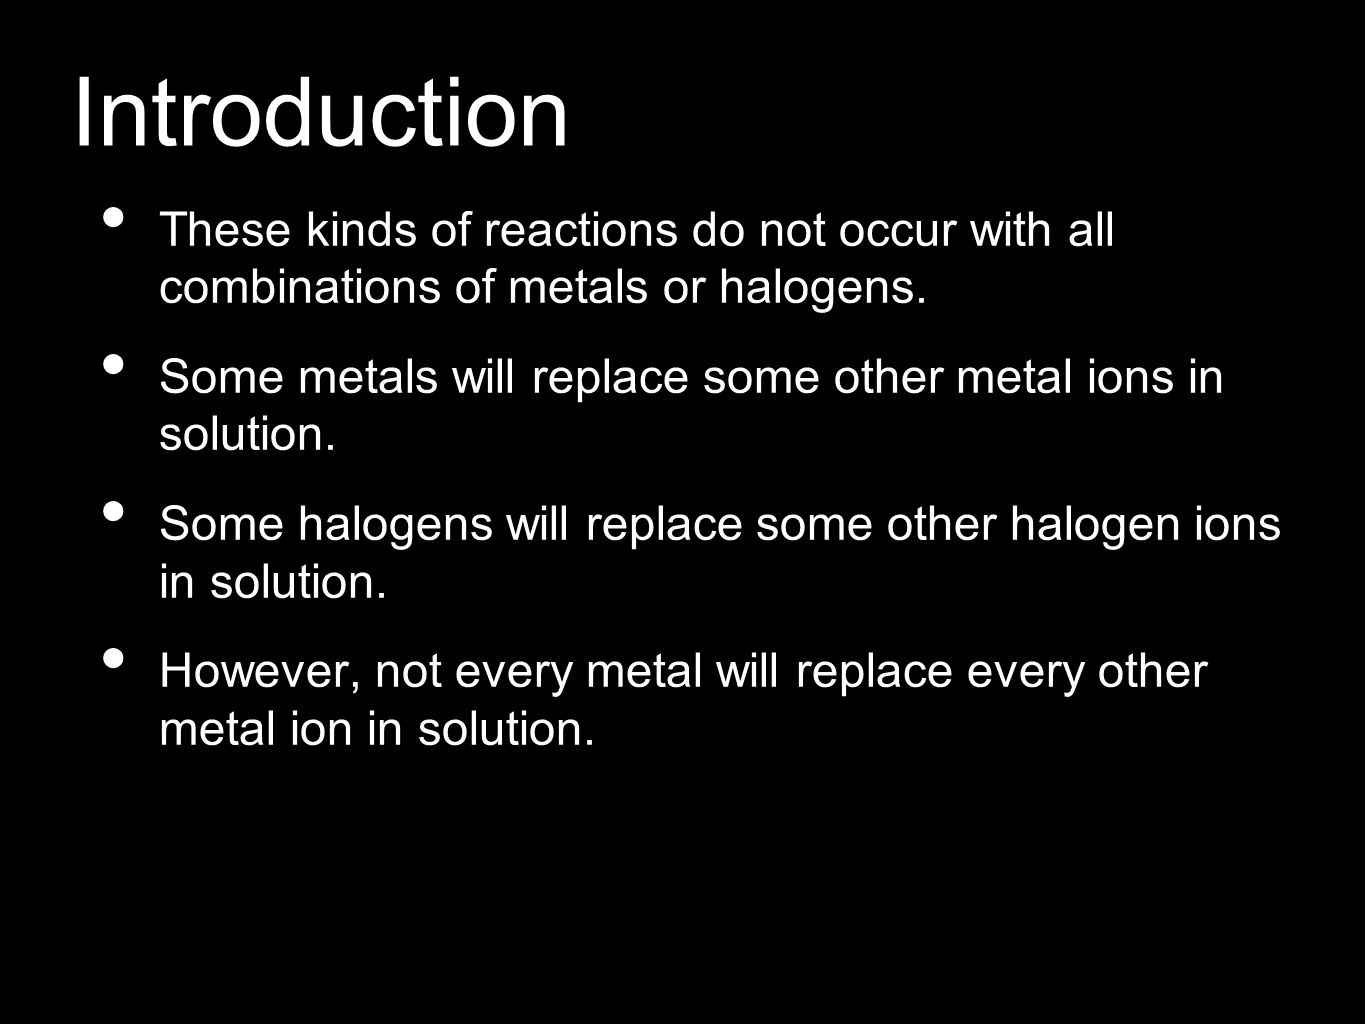 Introduction These kinds of reactions do not occur with all combinations of metals or halogens.